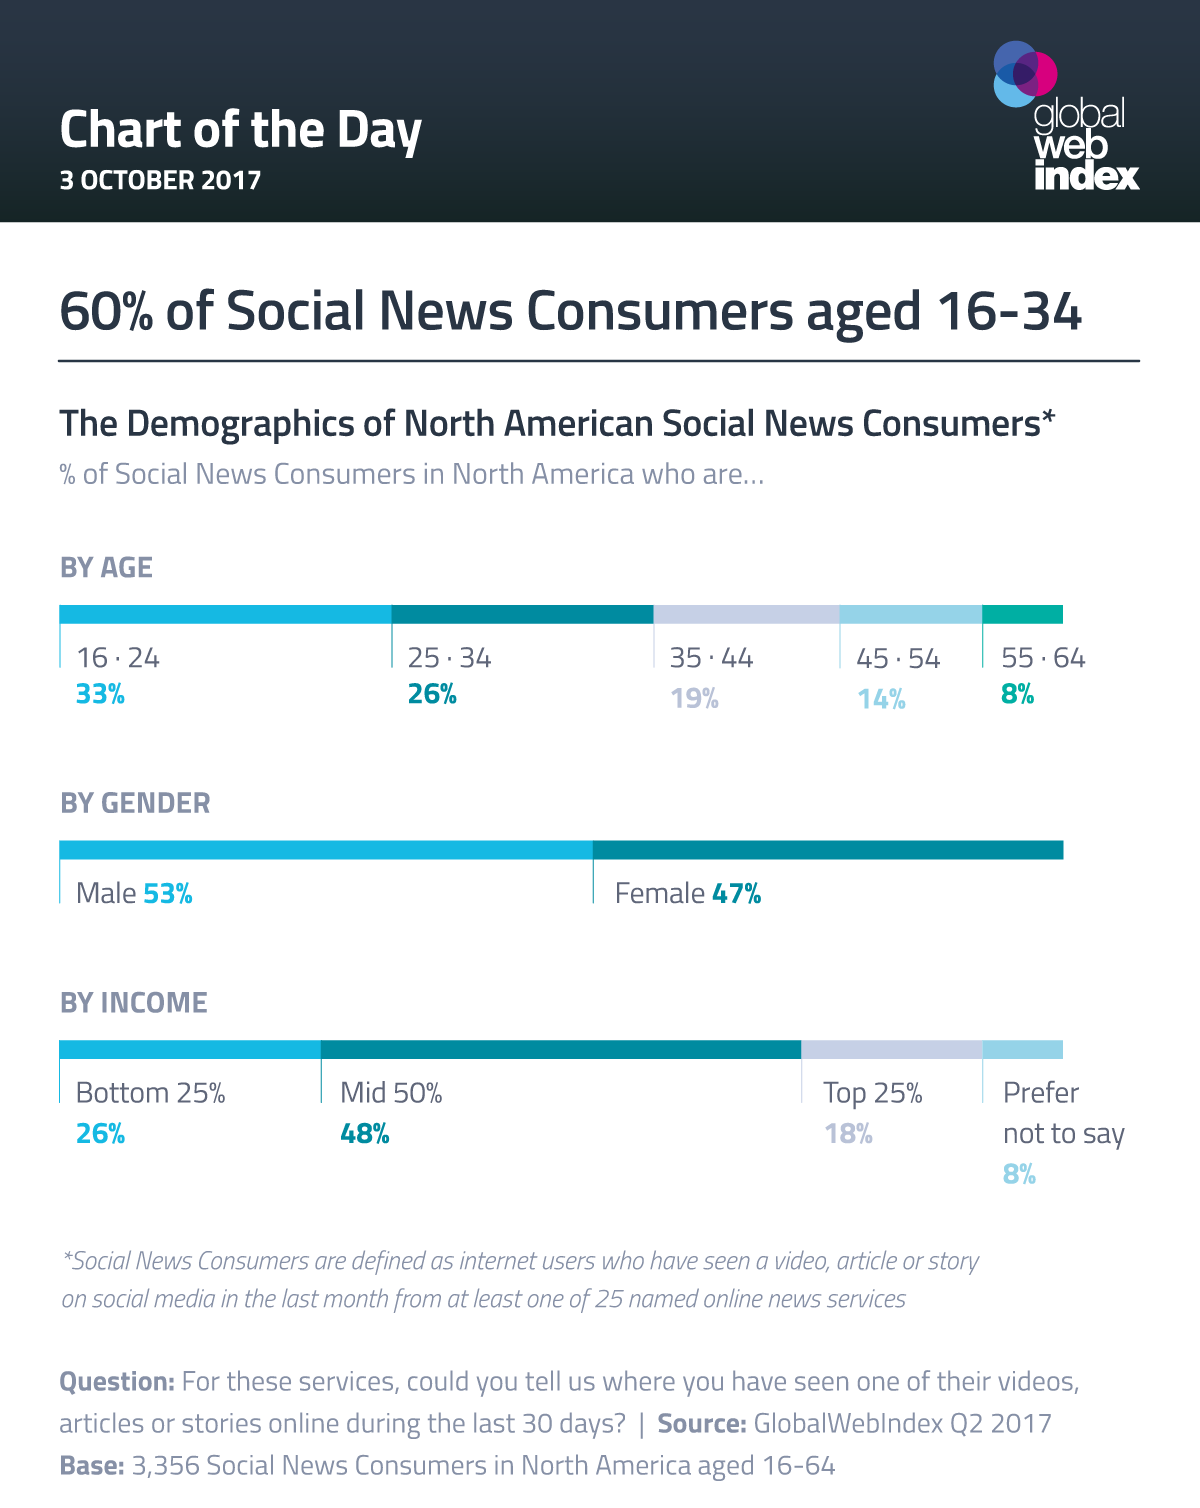 60% of Social News Consumers aged 16-34